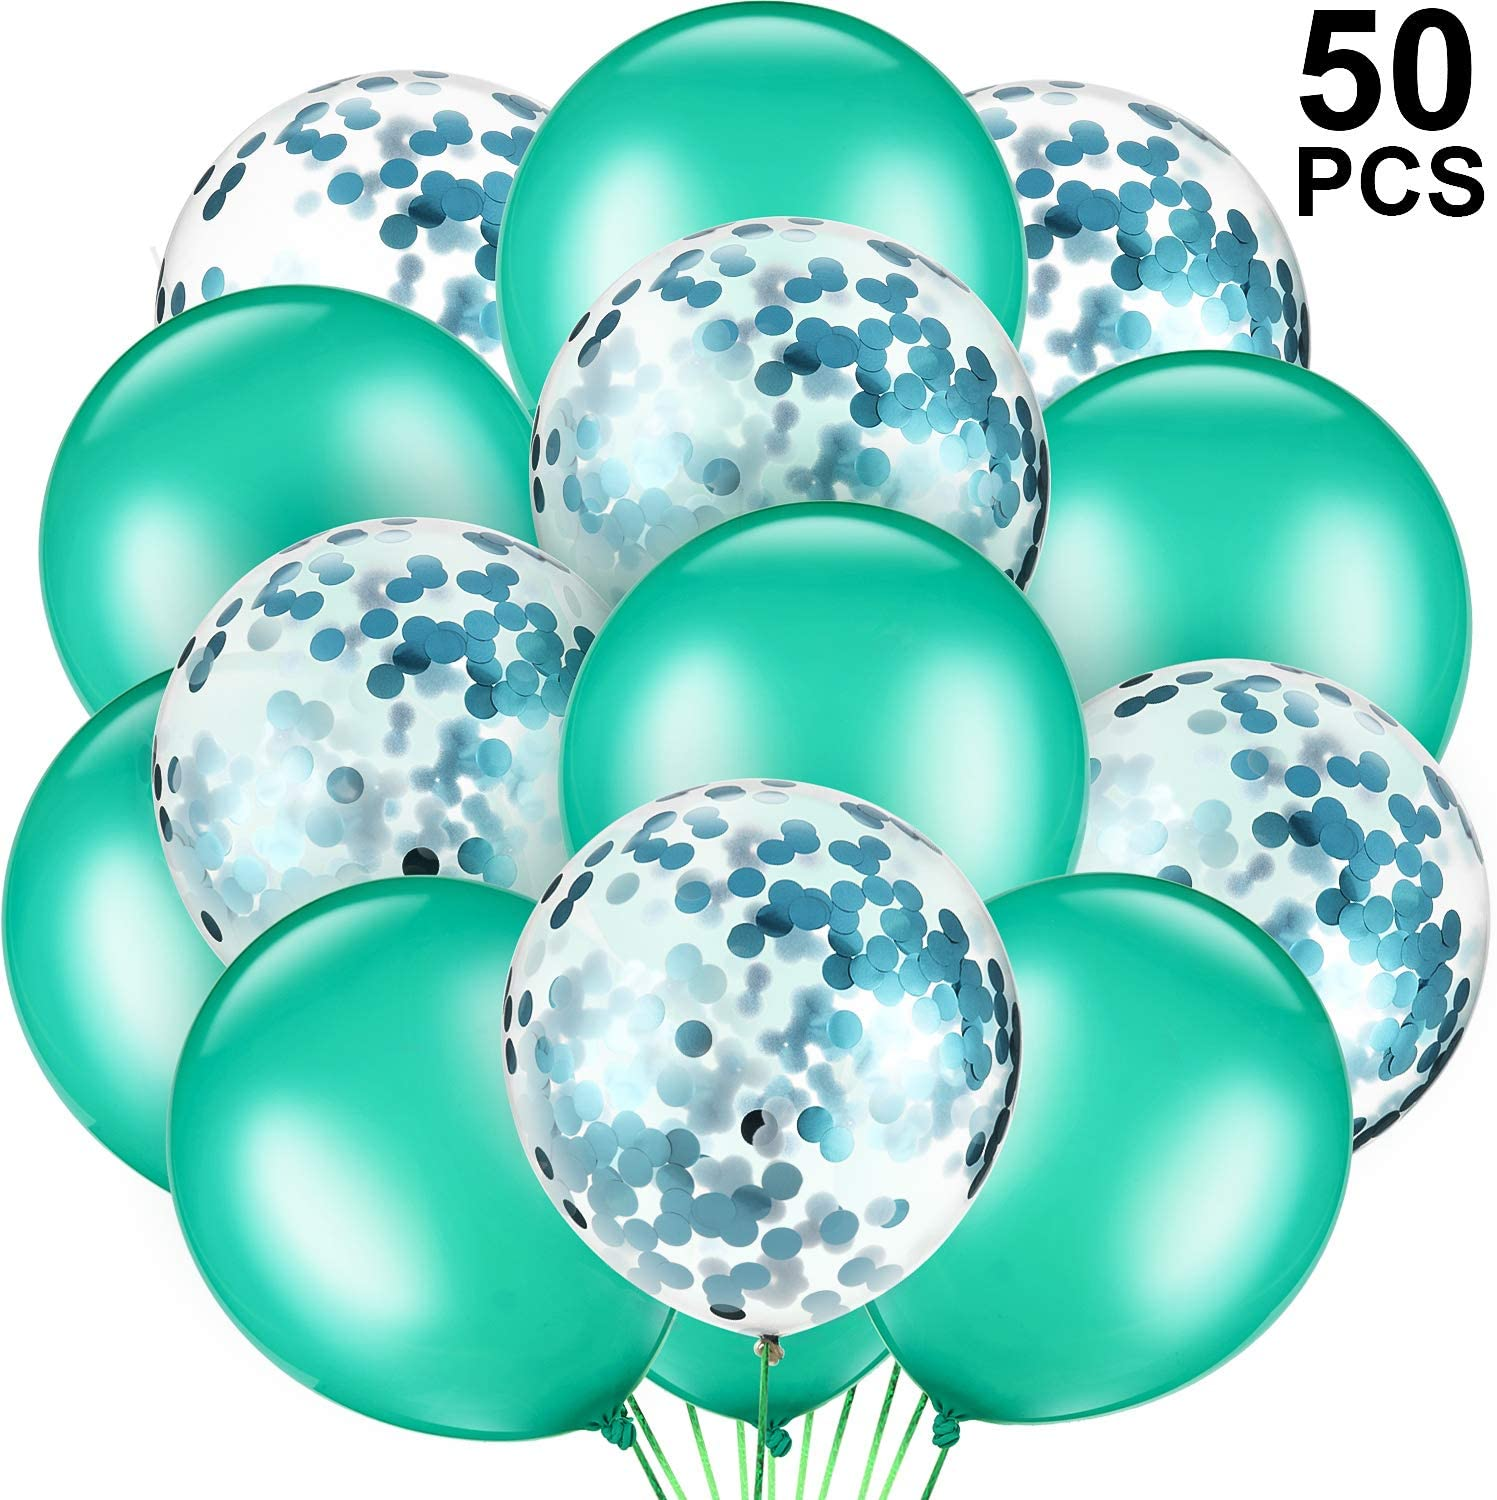 Gejoy 50 Pieces Metallic Teal Balloons Confetti Turquoise Balloons Latex Confetti Balloons with 64 ft Ribbons for Engagement Baby Shower Wedding Birthday Party Favors